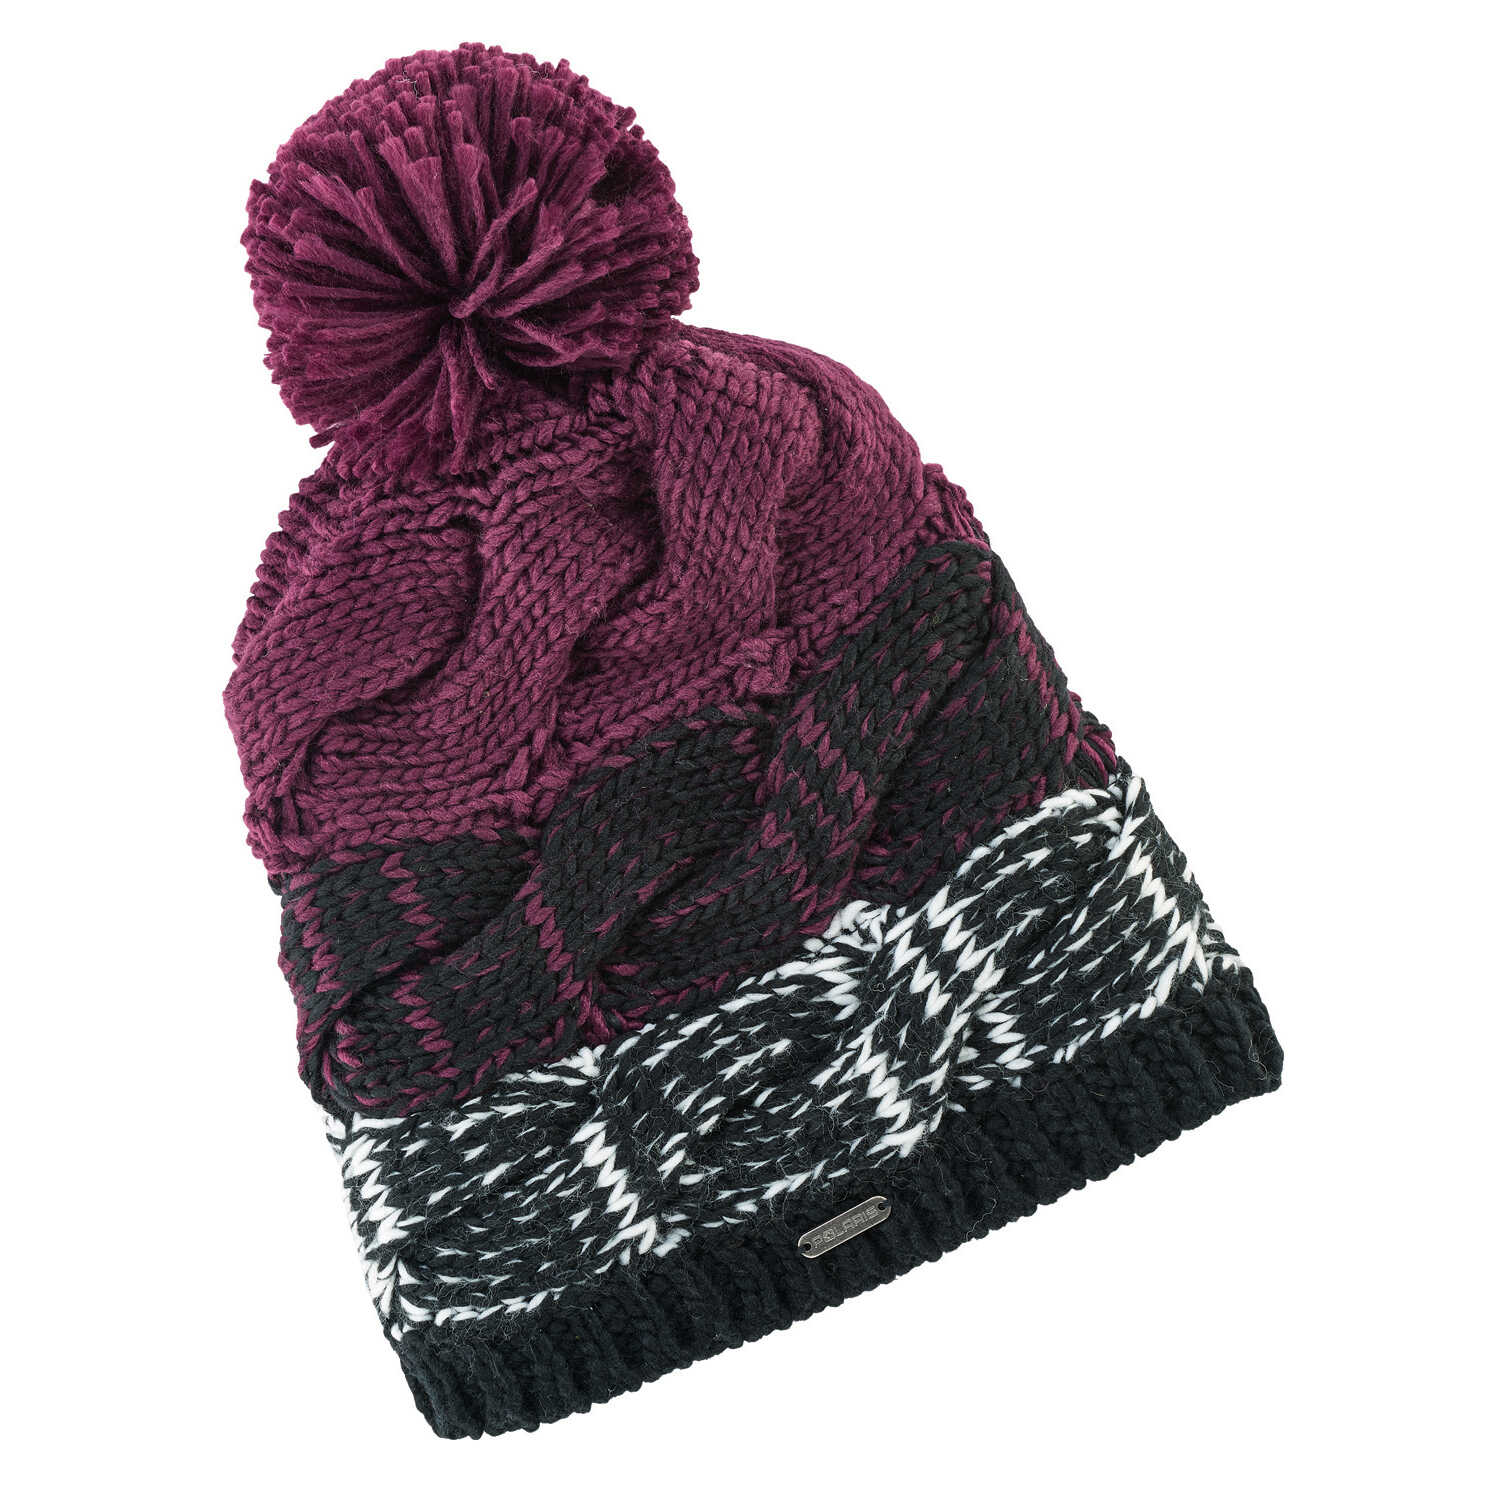 Women's Cable Beanie with Pom Pom, Black/Purple